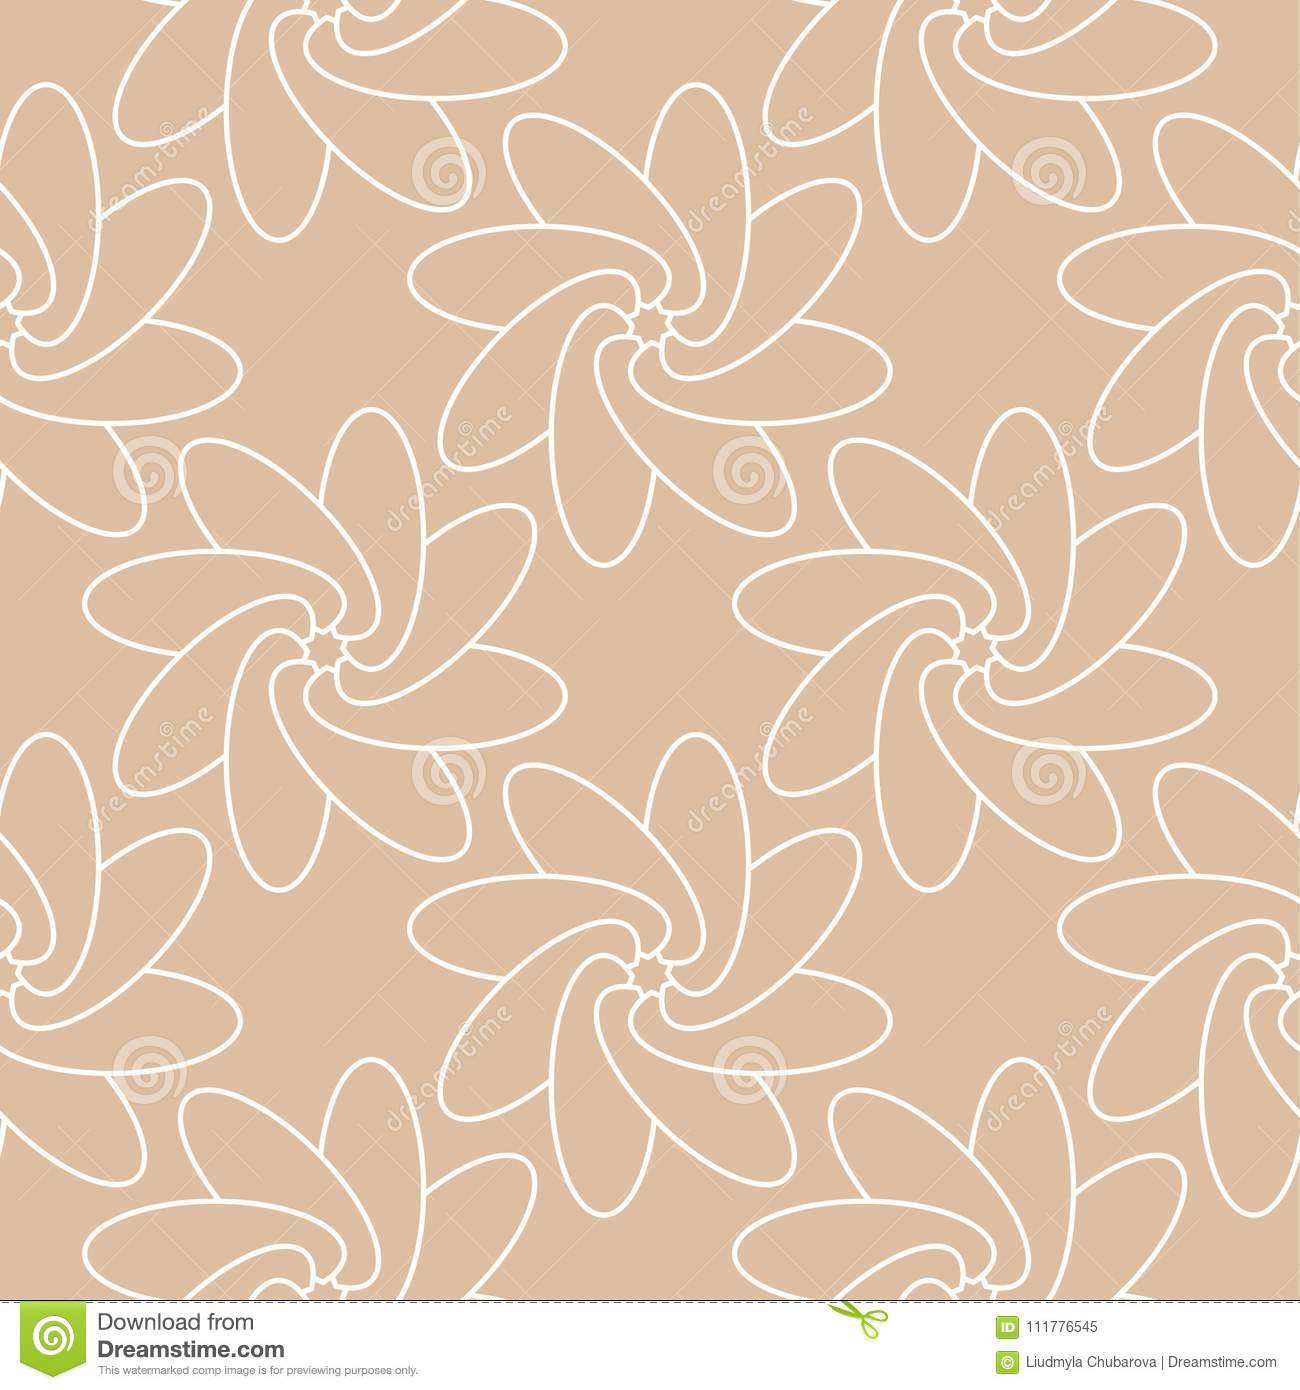 White floral seamless pattern on beige background